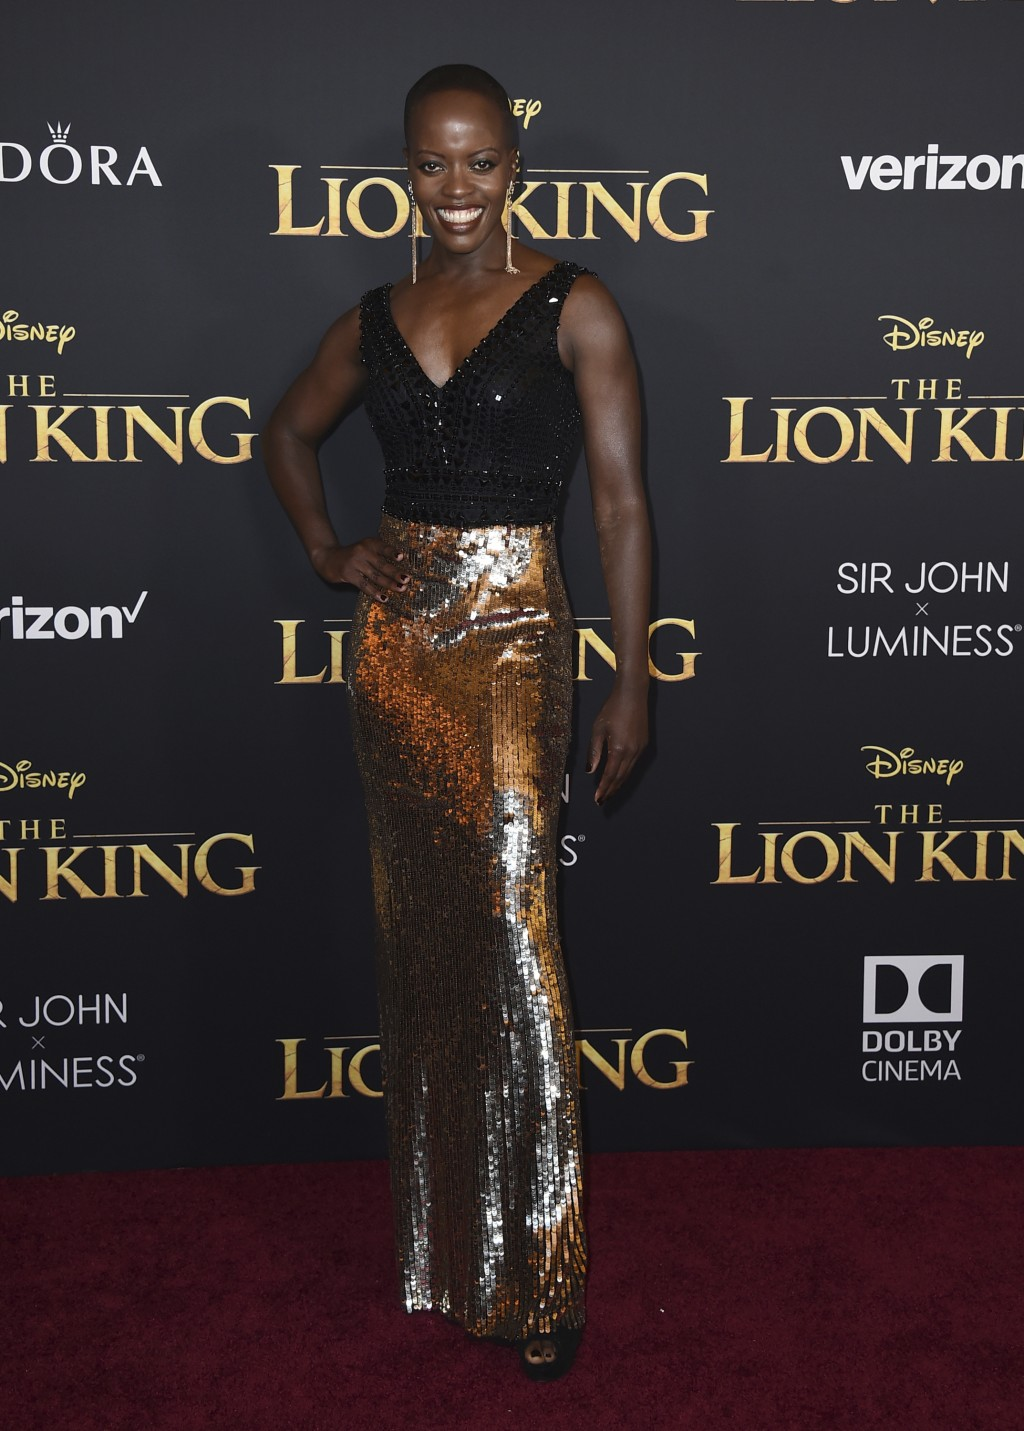 """Florence Kasumba arrives at the world premiere of """"The Lion King"""" on Tuesday, July 9, 2019, at the Dolby Theatre in Los Angeles. (Photo by Jordan Stra"""